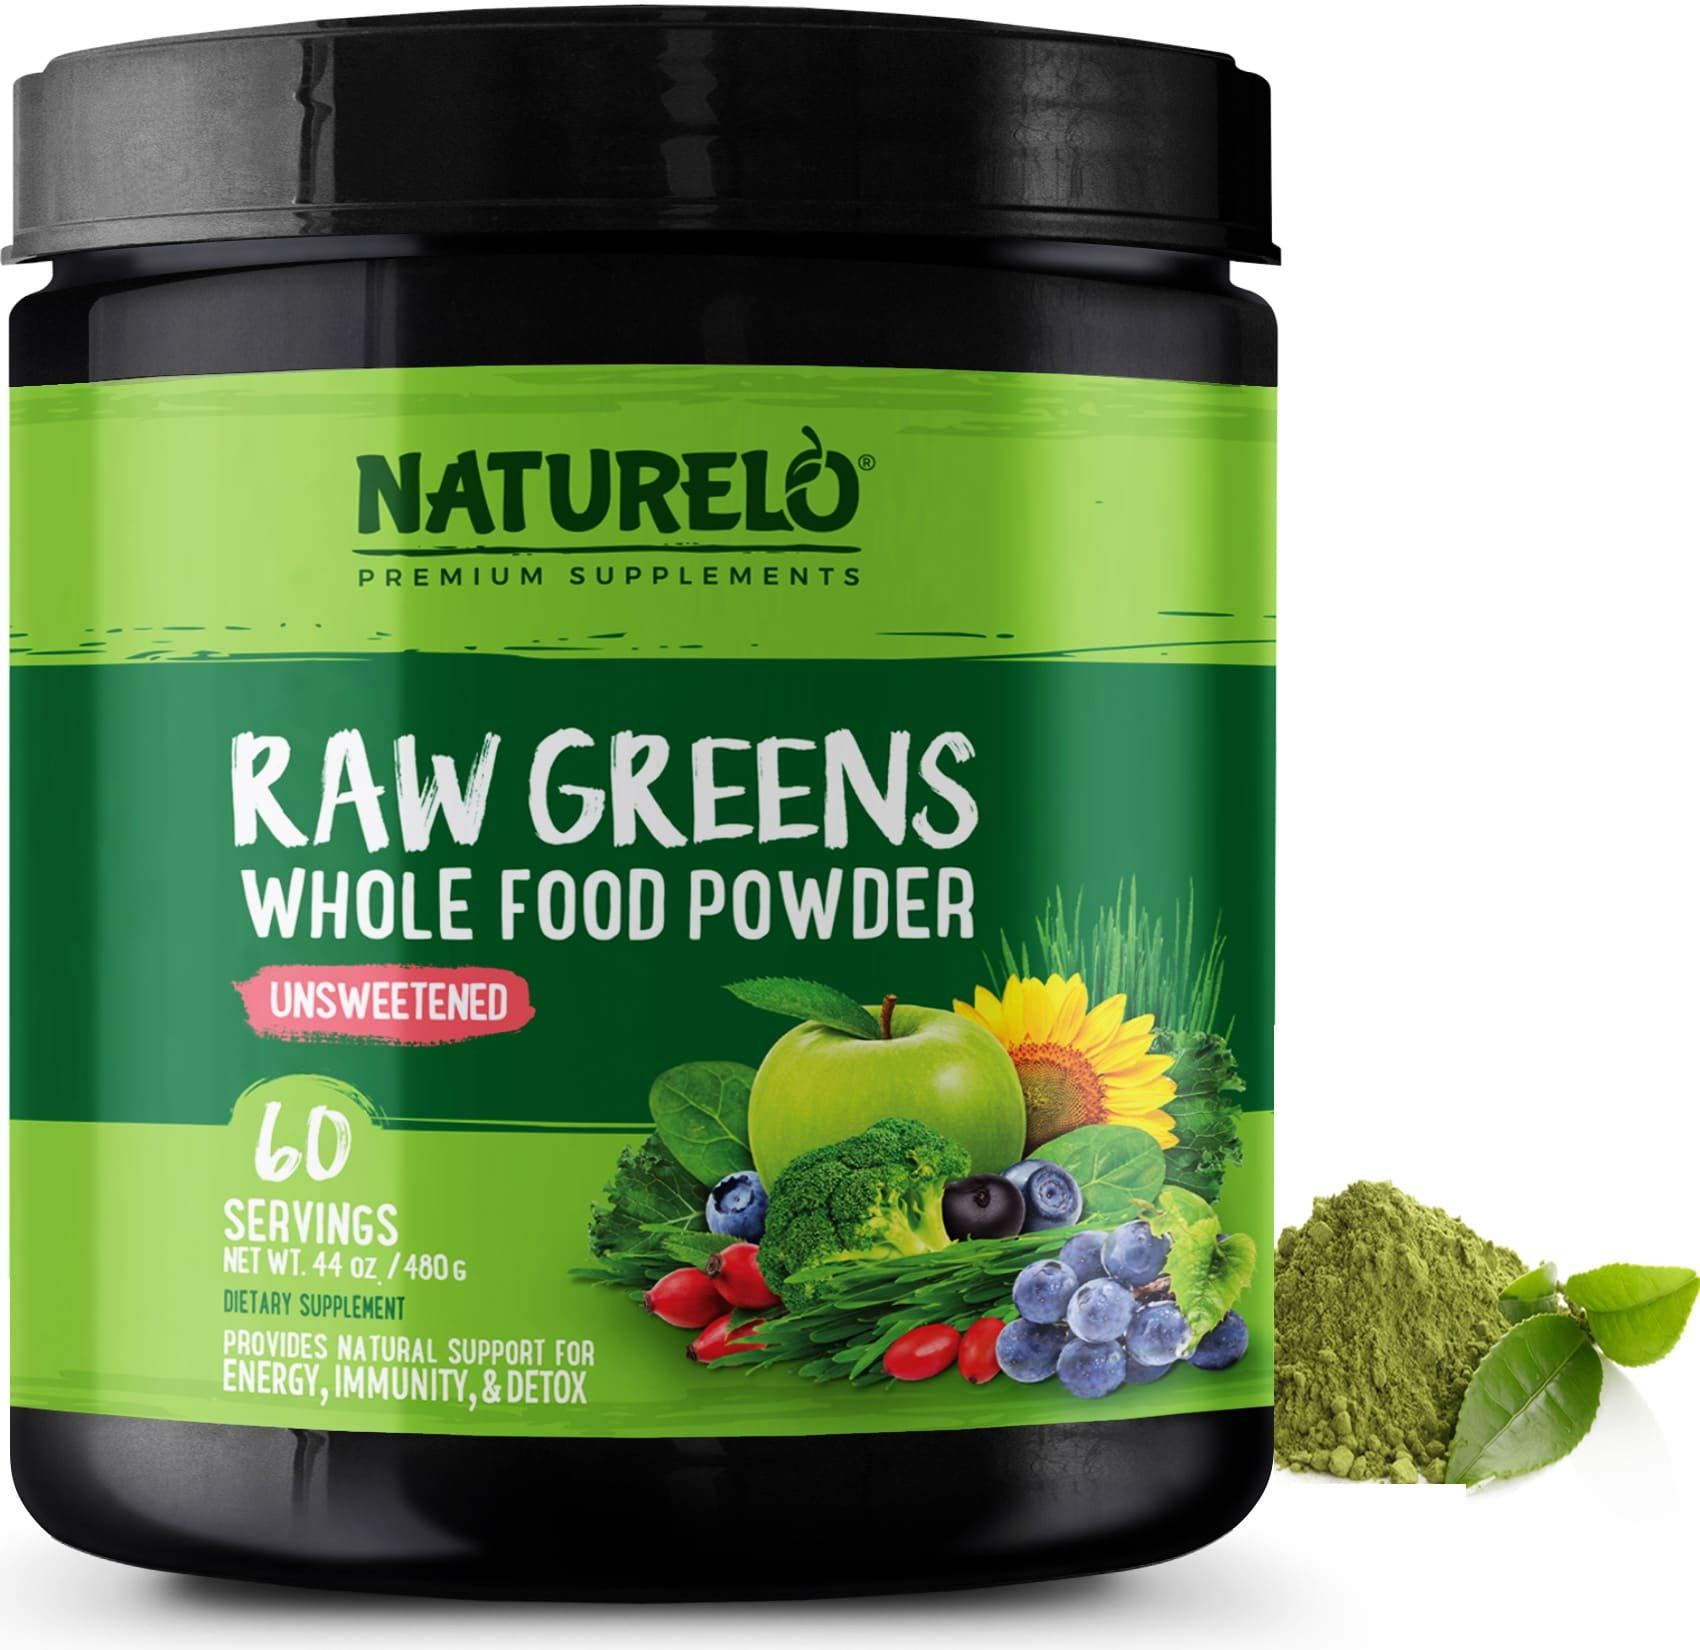 NATURELO Raw Greens Superfood Powder - Unsweetened - Boost Energy, Detox, Enhance Health - Organic Spirulina - Wheat Grass - Whole Food Vitamins from Fruit, Vegetable Extracts - 60 Servings by NATURELO